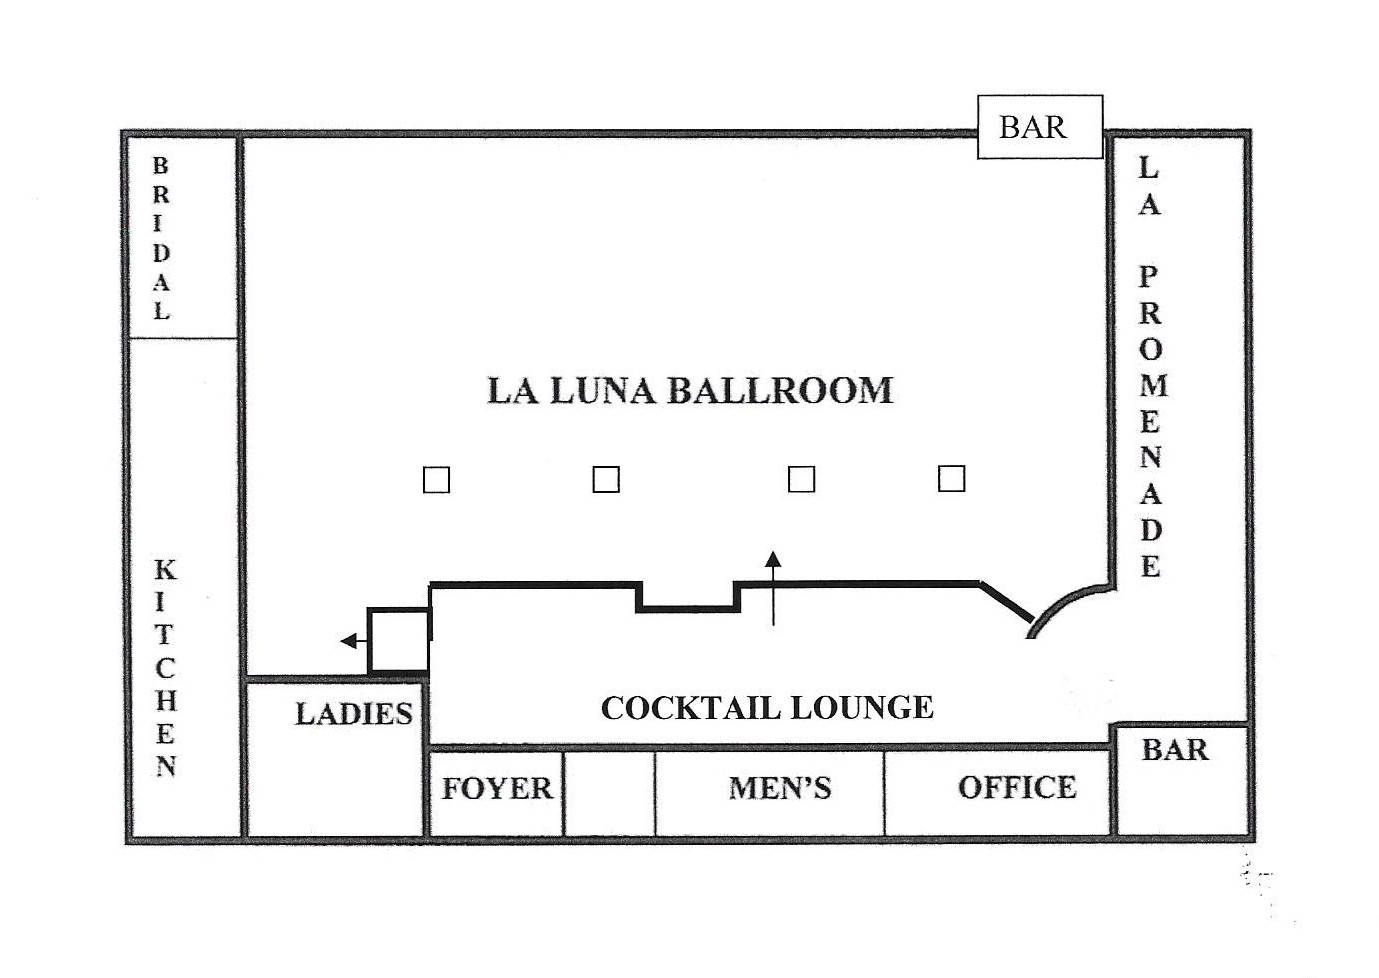 La luna venue layout la luna banquet hall wedding for Wedding floor plan app